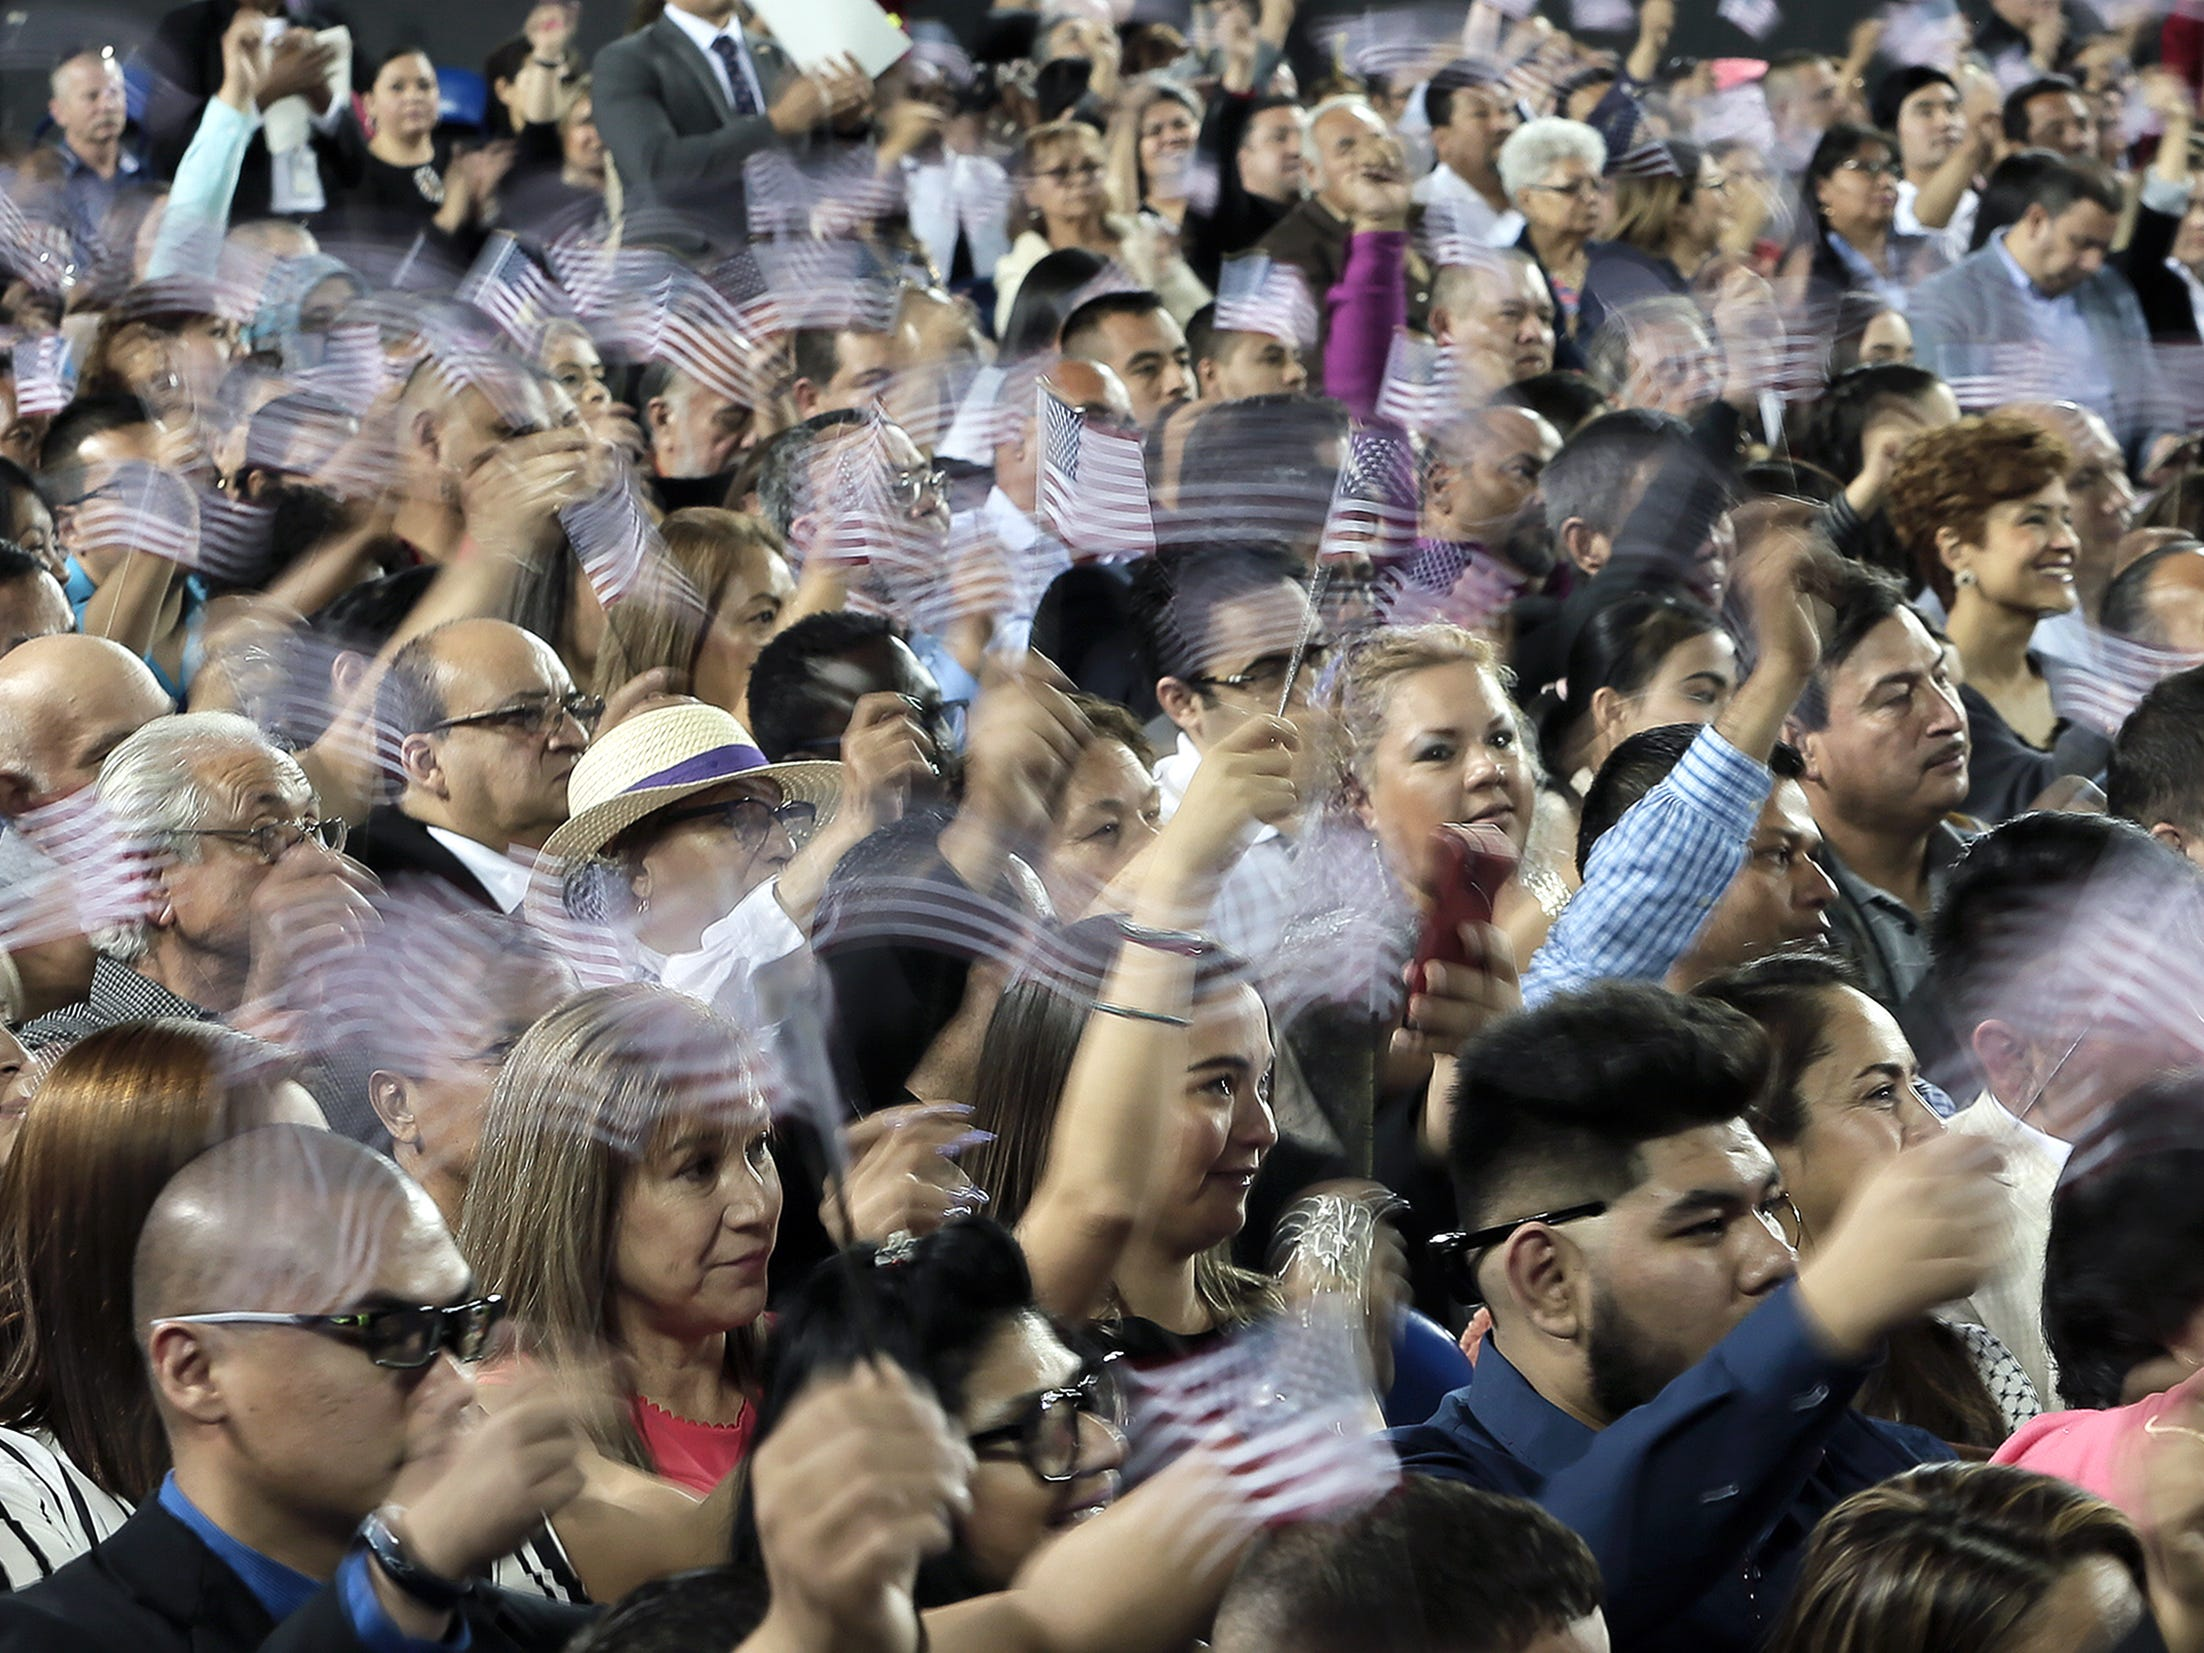 New citizens wave their flags after taking the oath of citizenship Thursday at the El Paso County Coliseum.